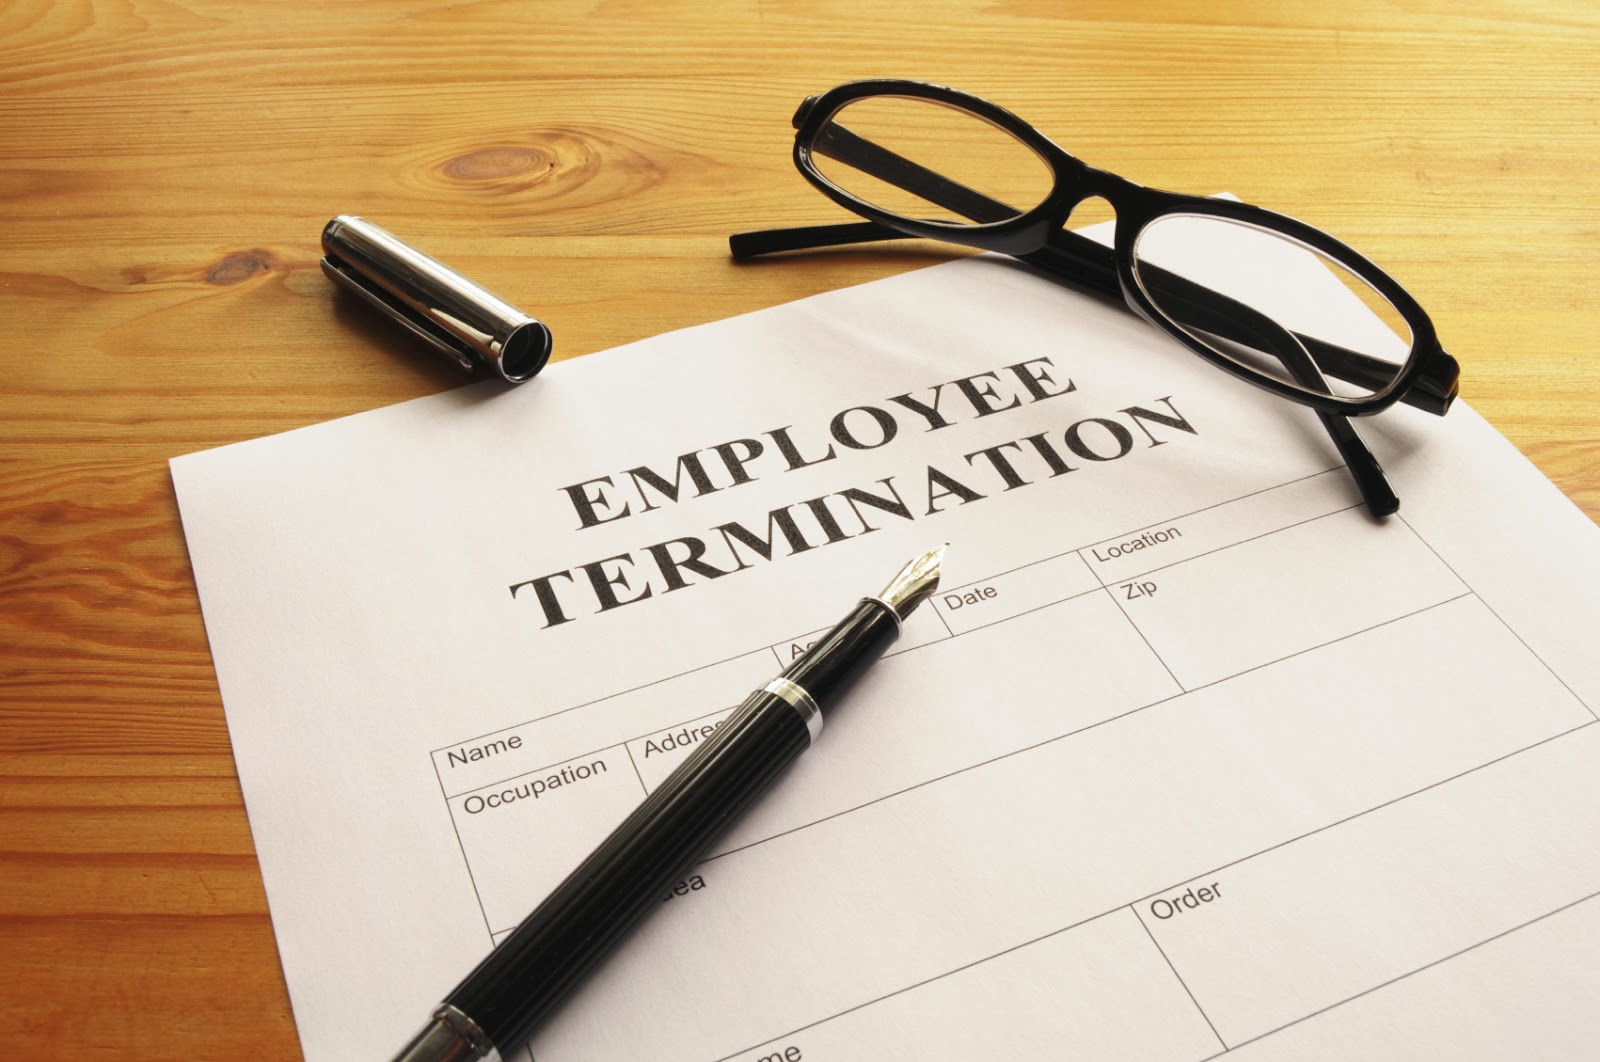 Law wrongful dismissal employment law